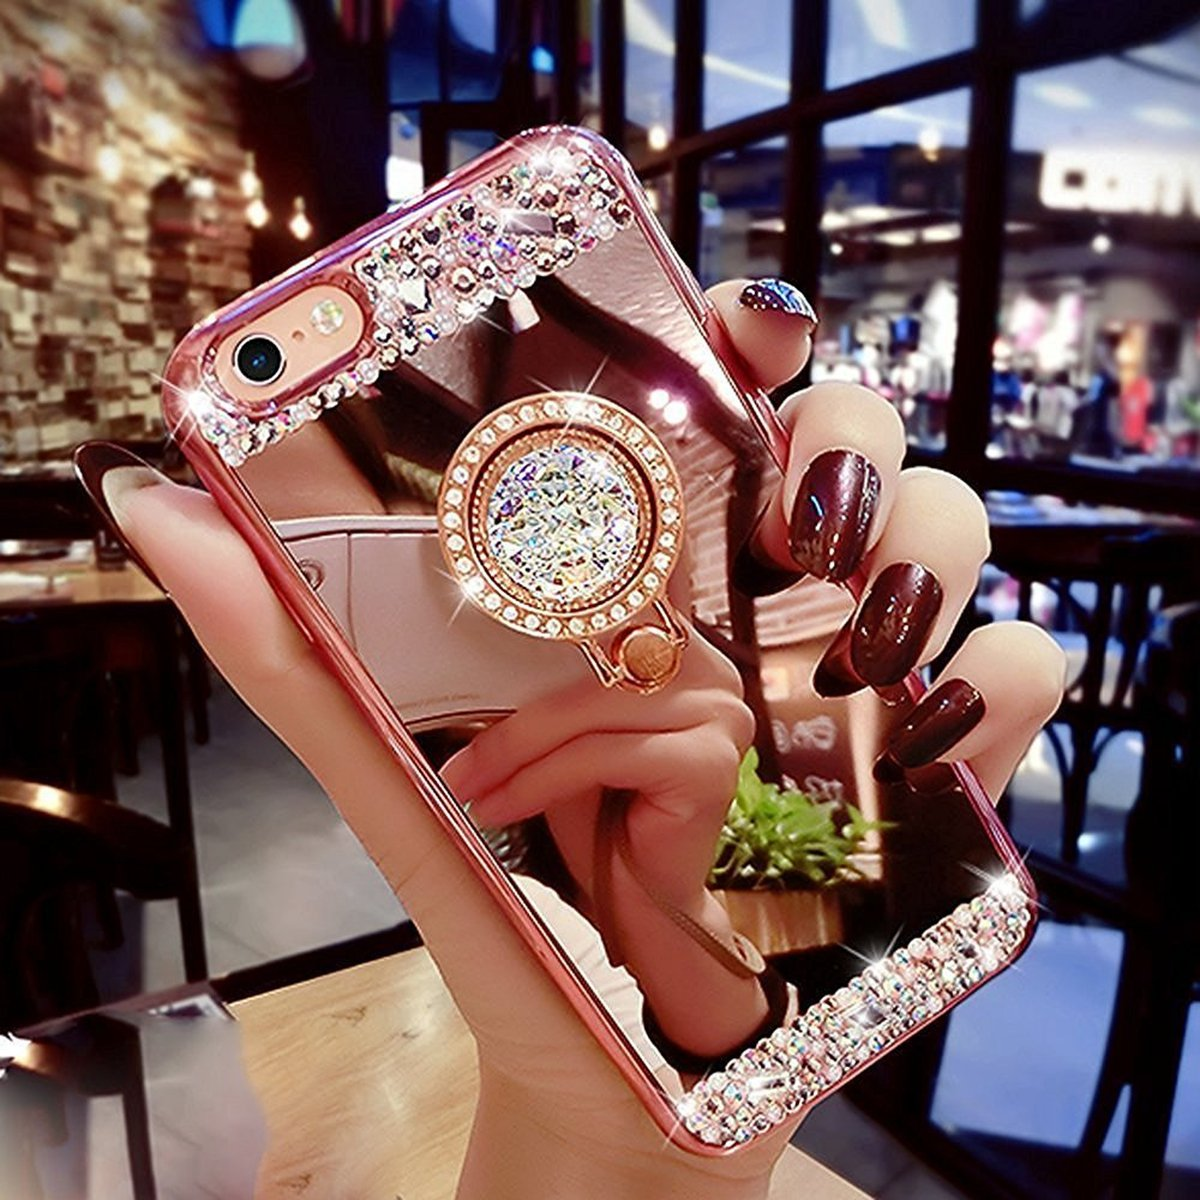 iPhone 6S Plus caso, ikasus lujo Crystal Rhinestone Bling Diamante Brillante Espejo de maquillaje con espejo Anillo soporte TPU de goma carcasa Skins para iPhone 6 Plus/6S Plus 5.5 , compatible con Aple iPhone 6 Plus